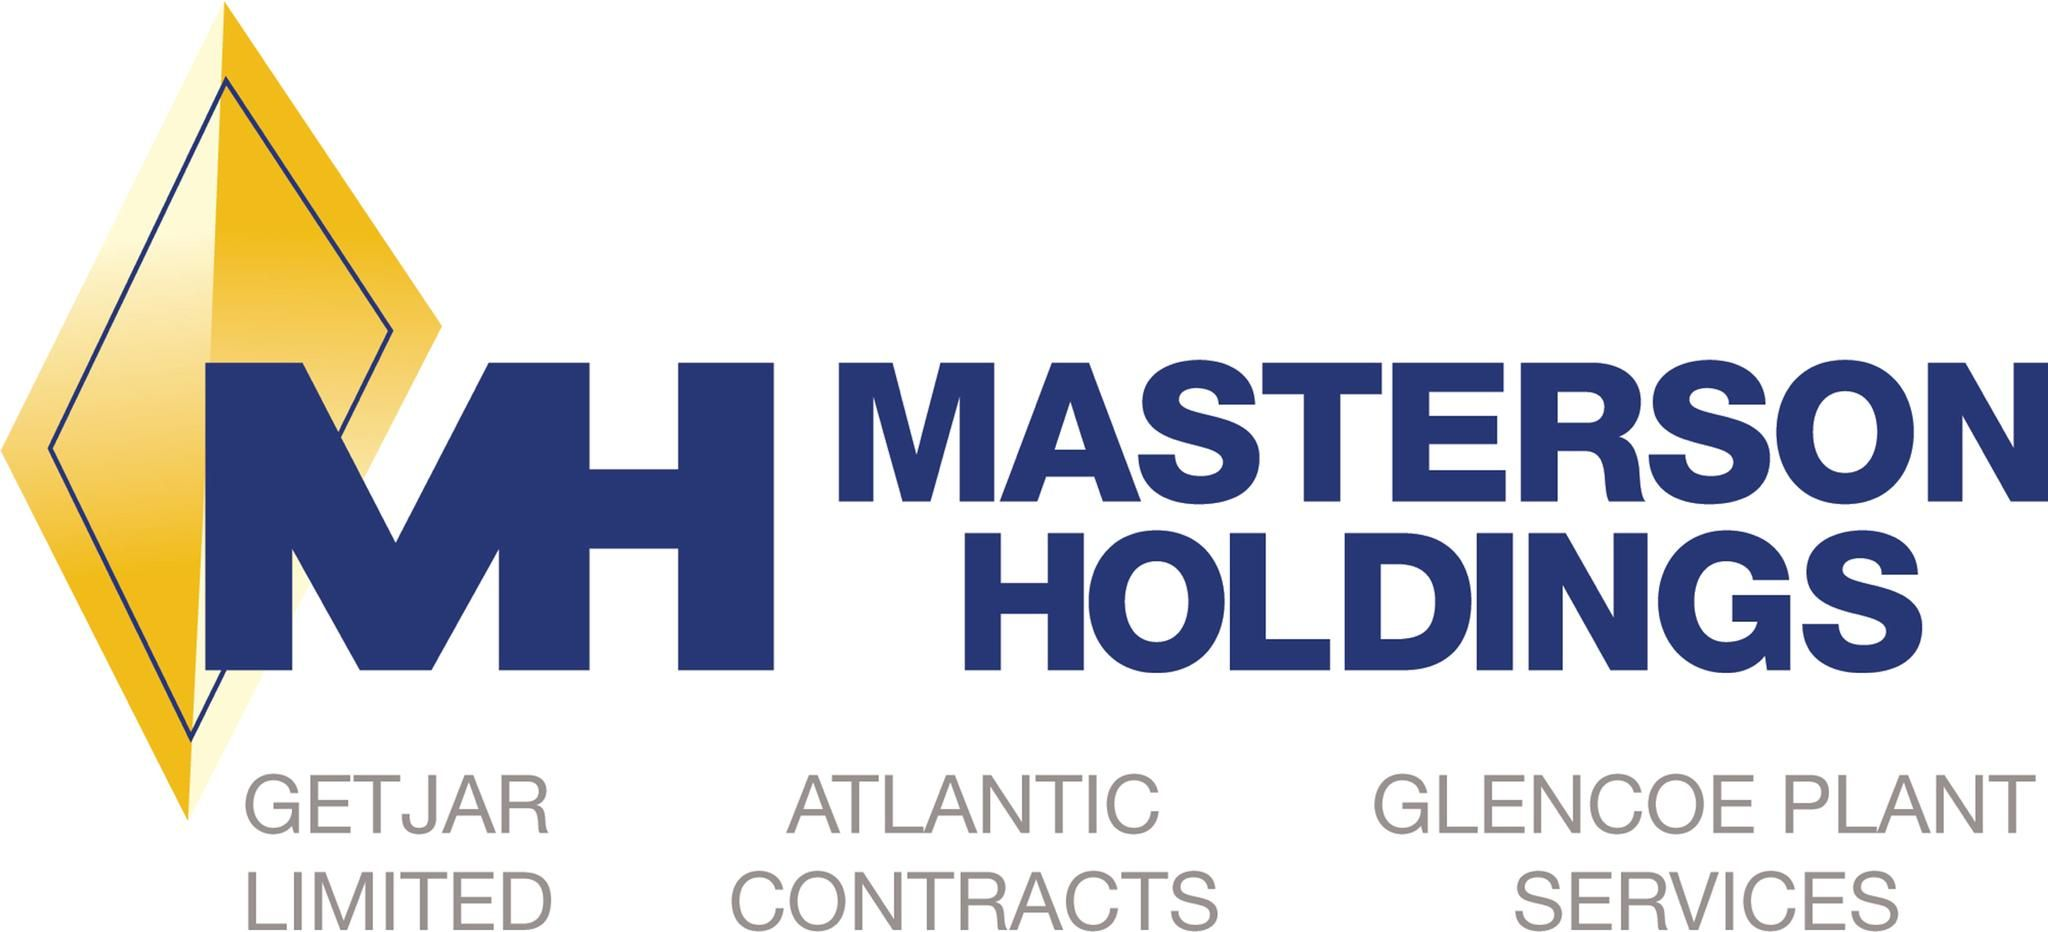 Masterson Holdings